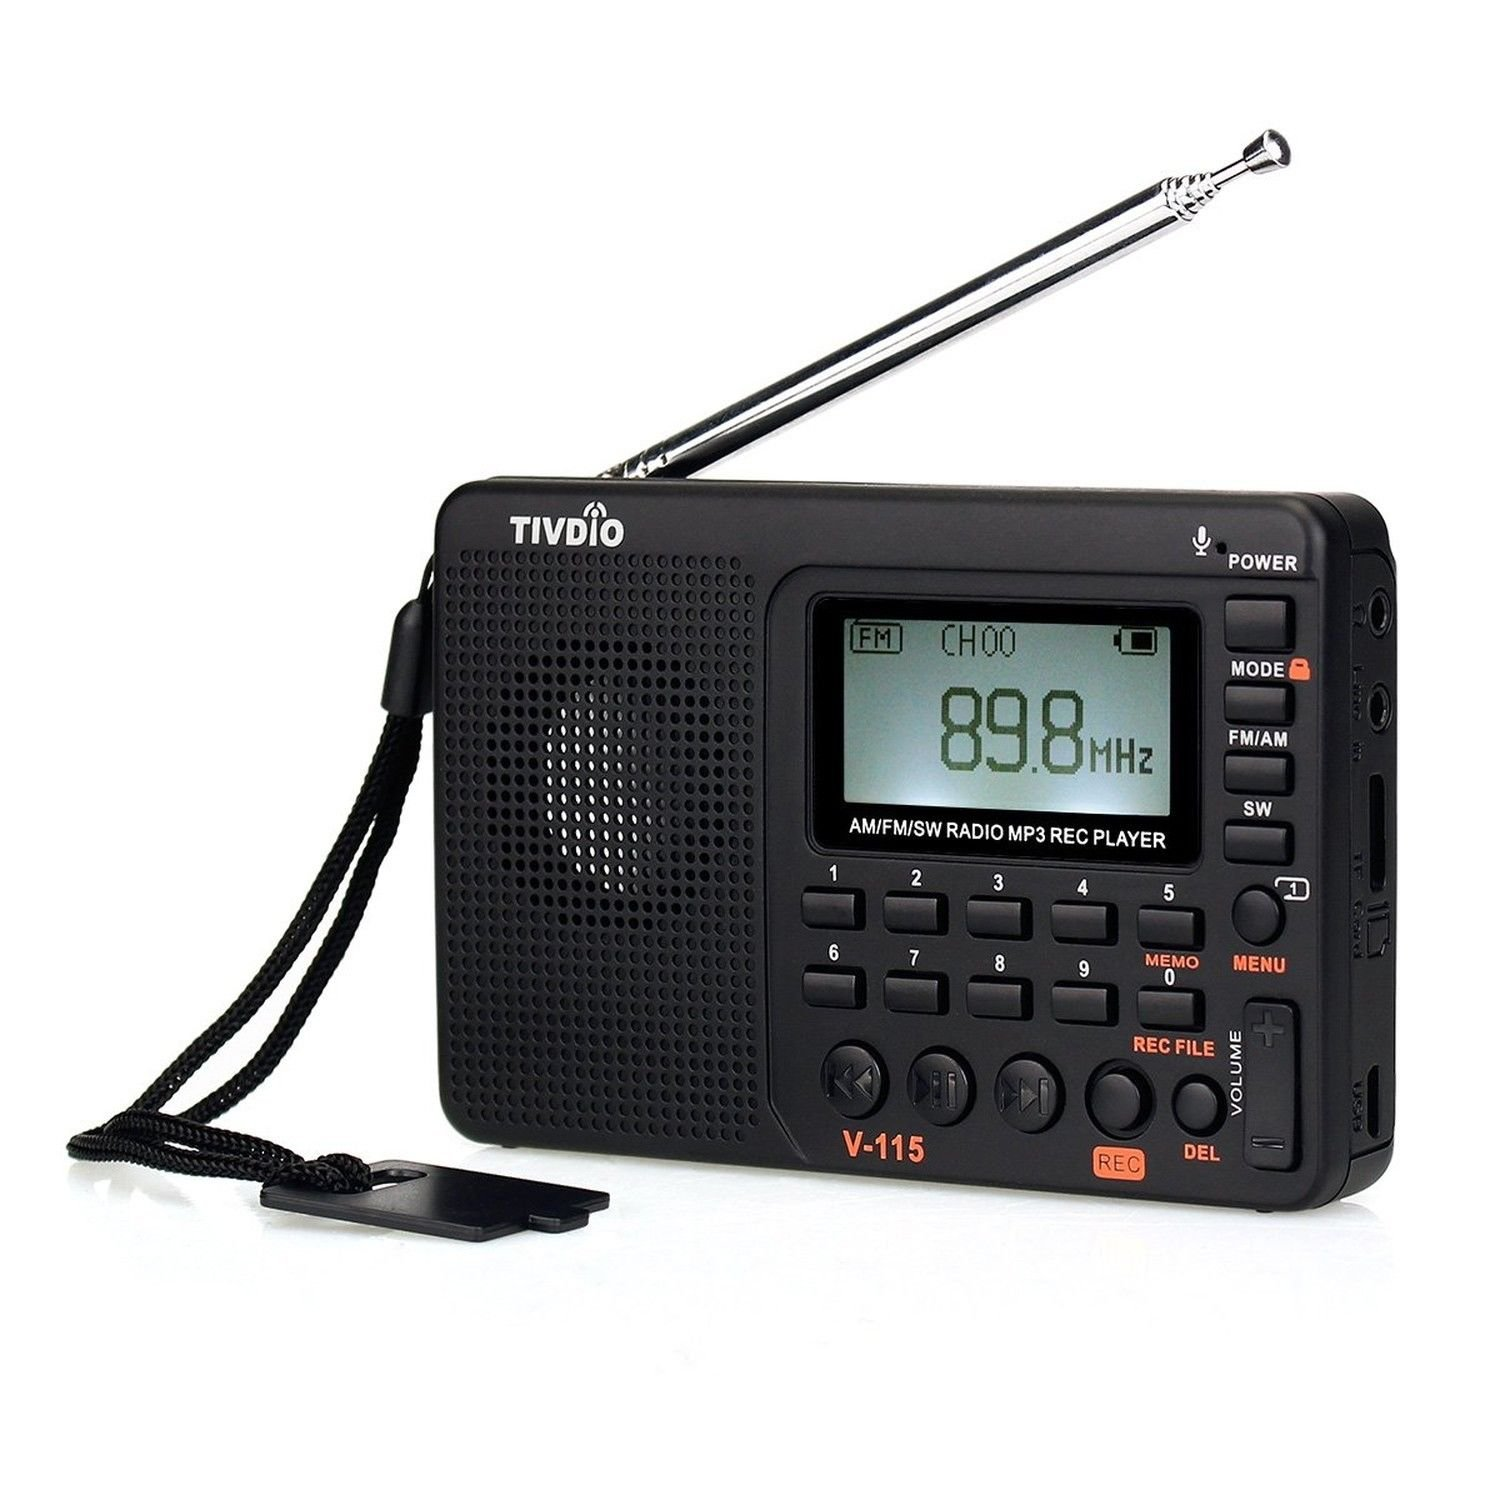 TIVDIO V-115 Portable Shortwave Transistor Radio AM/FM Stereo with MP3 Player